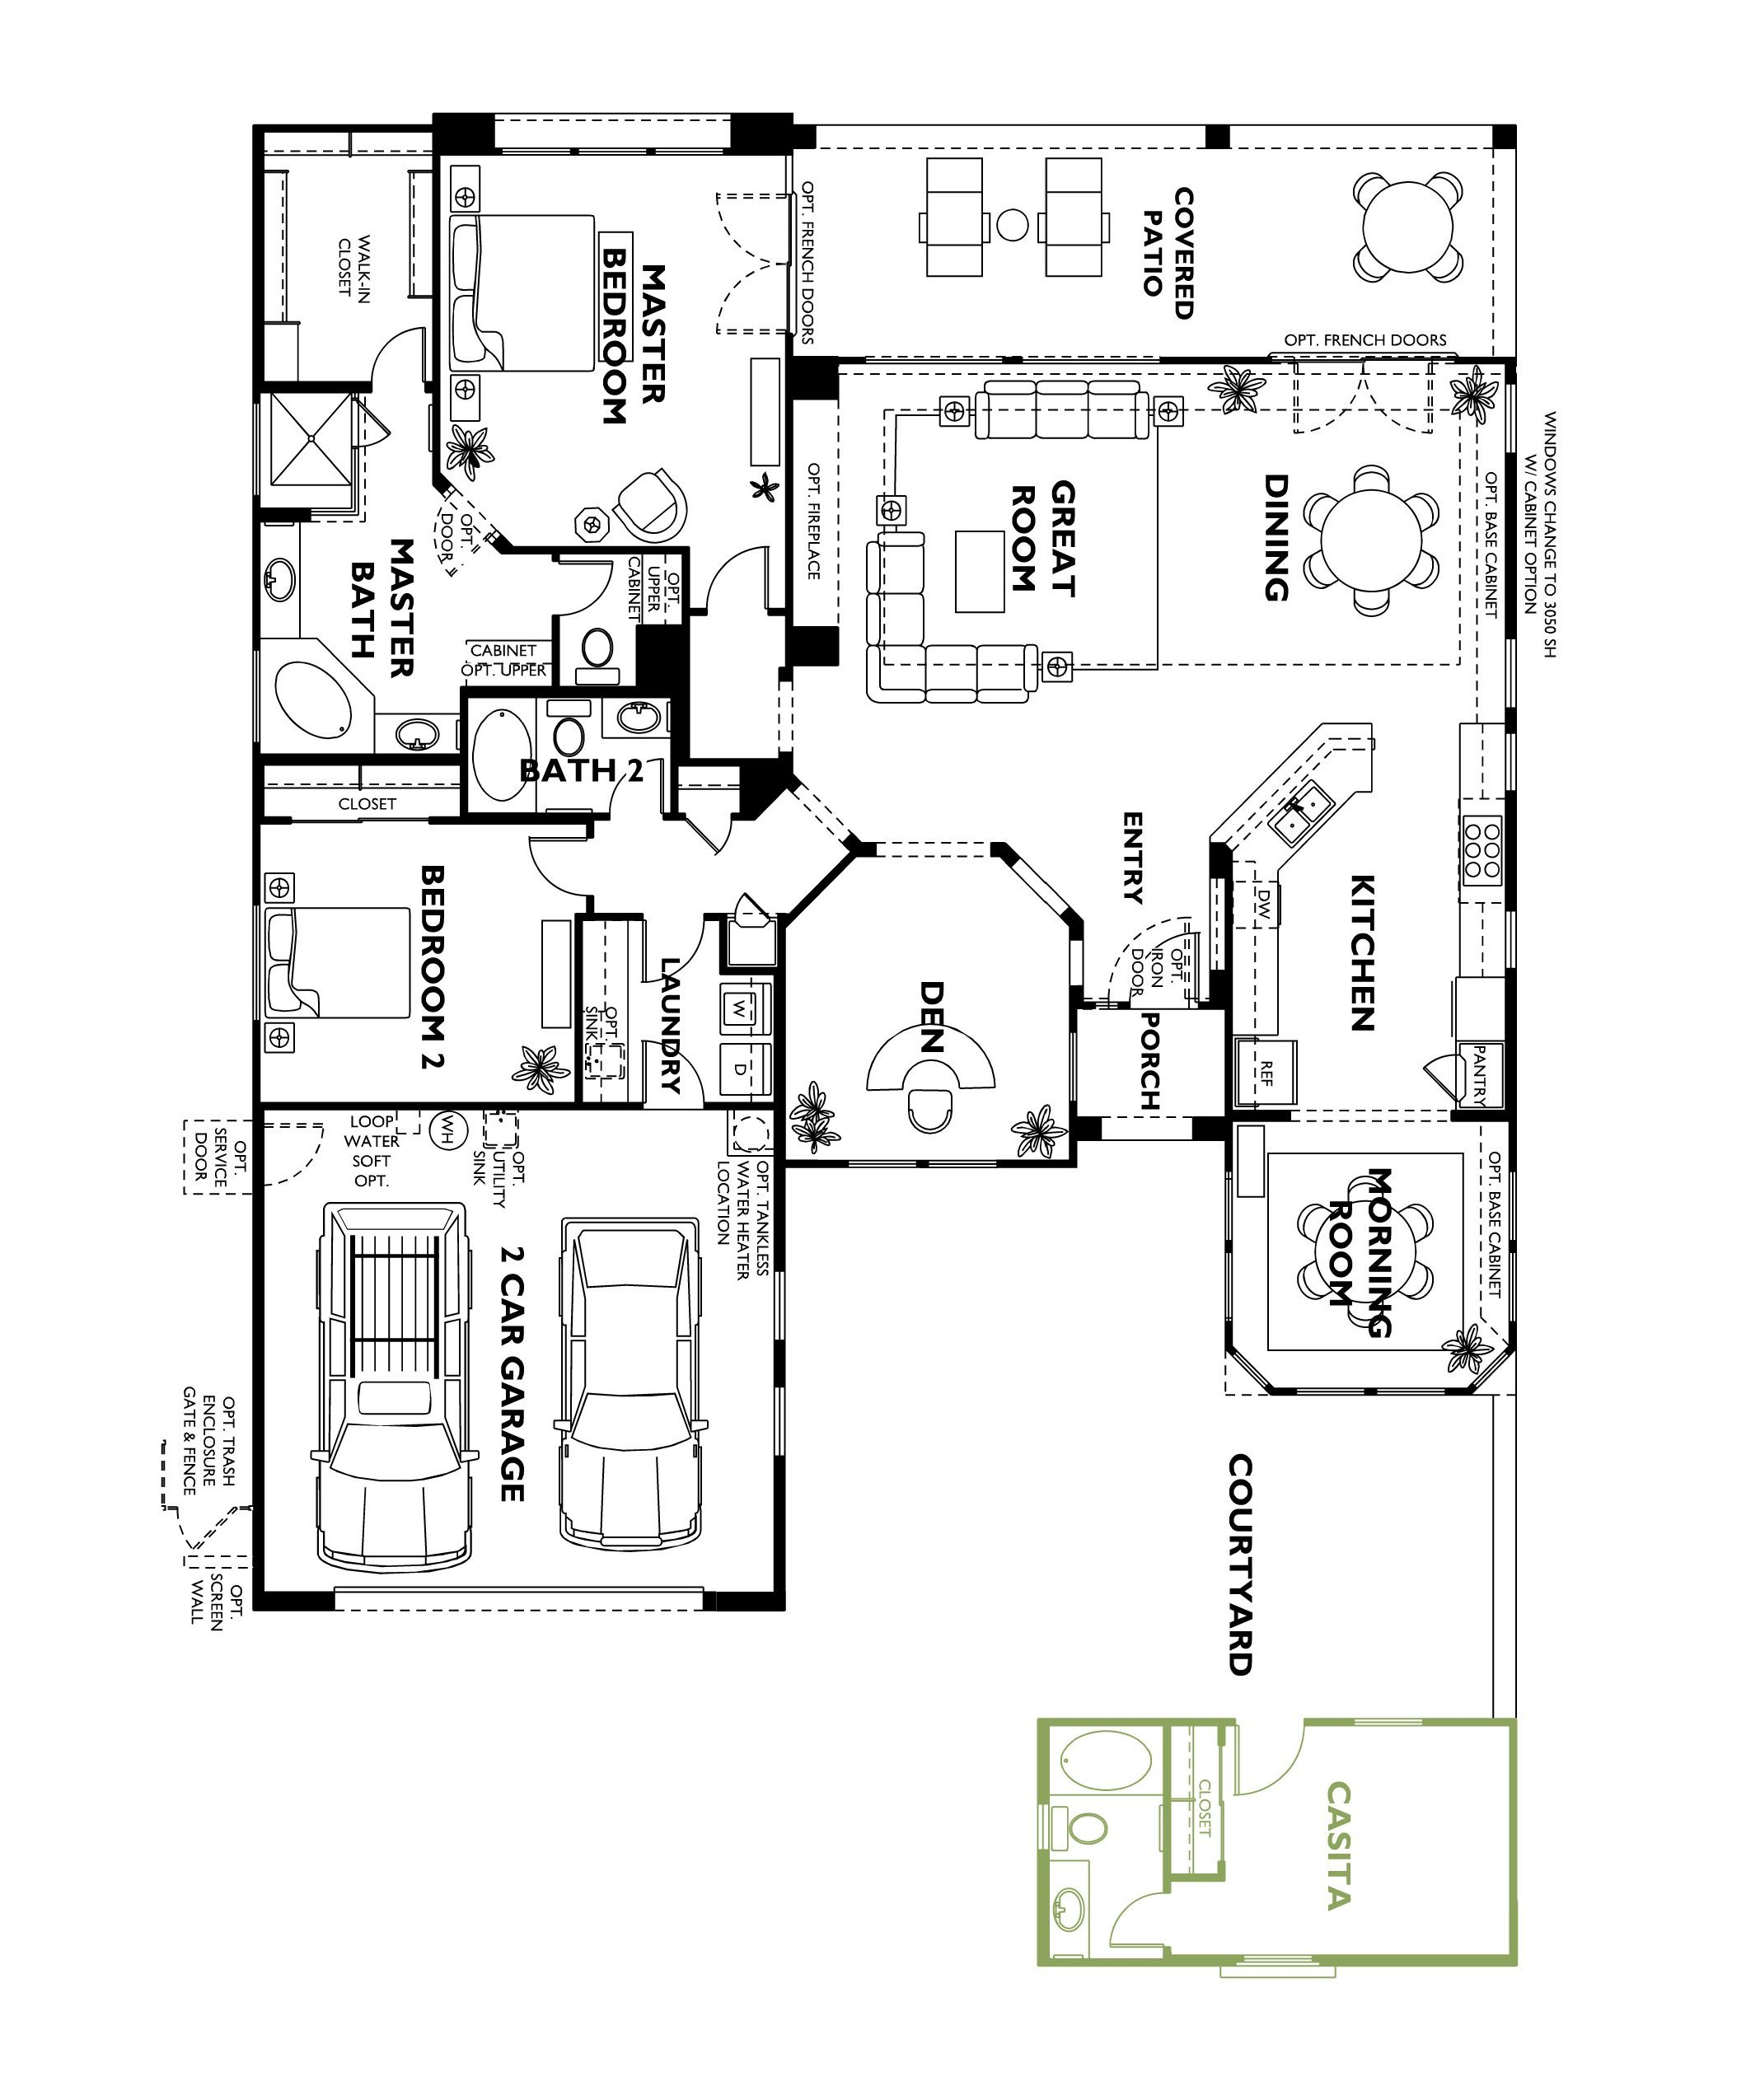 Trilogy at vistancia cadiz floor plan model home with for 2 bedroom casita plans